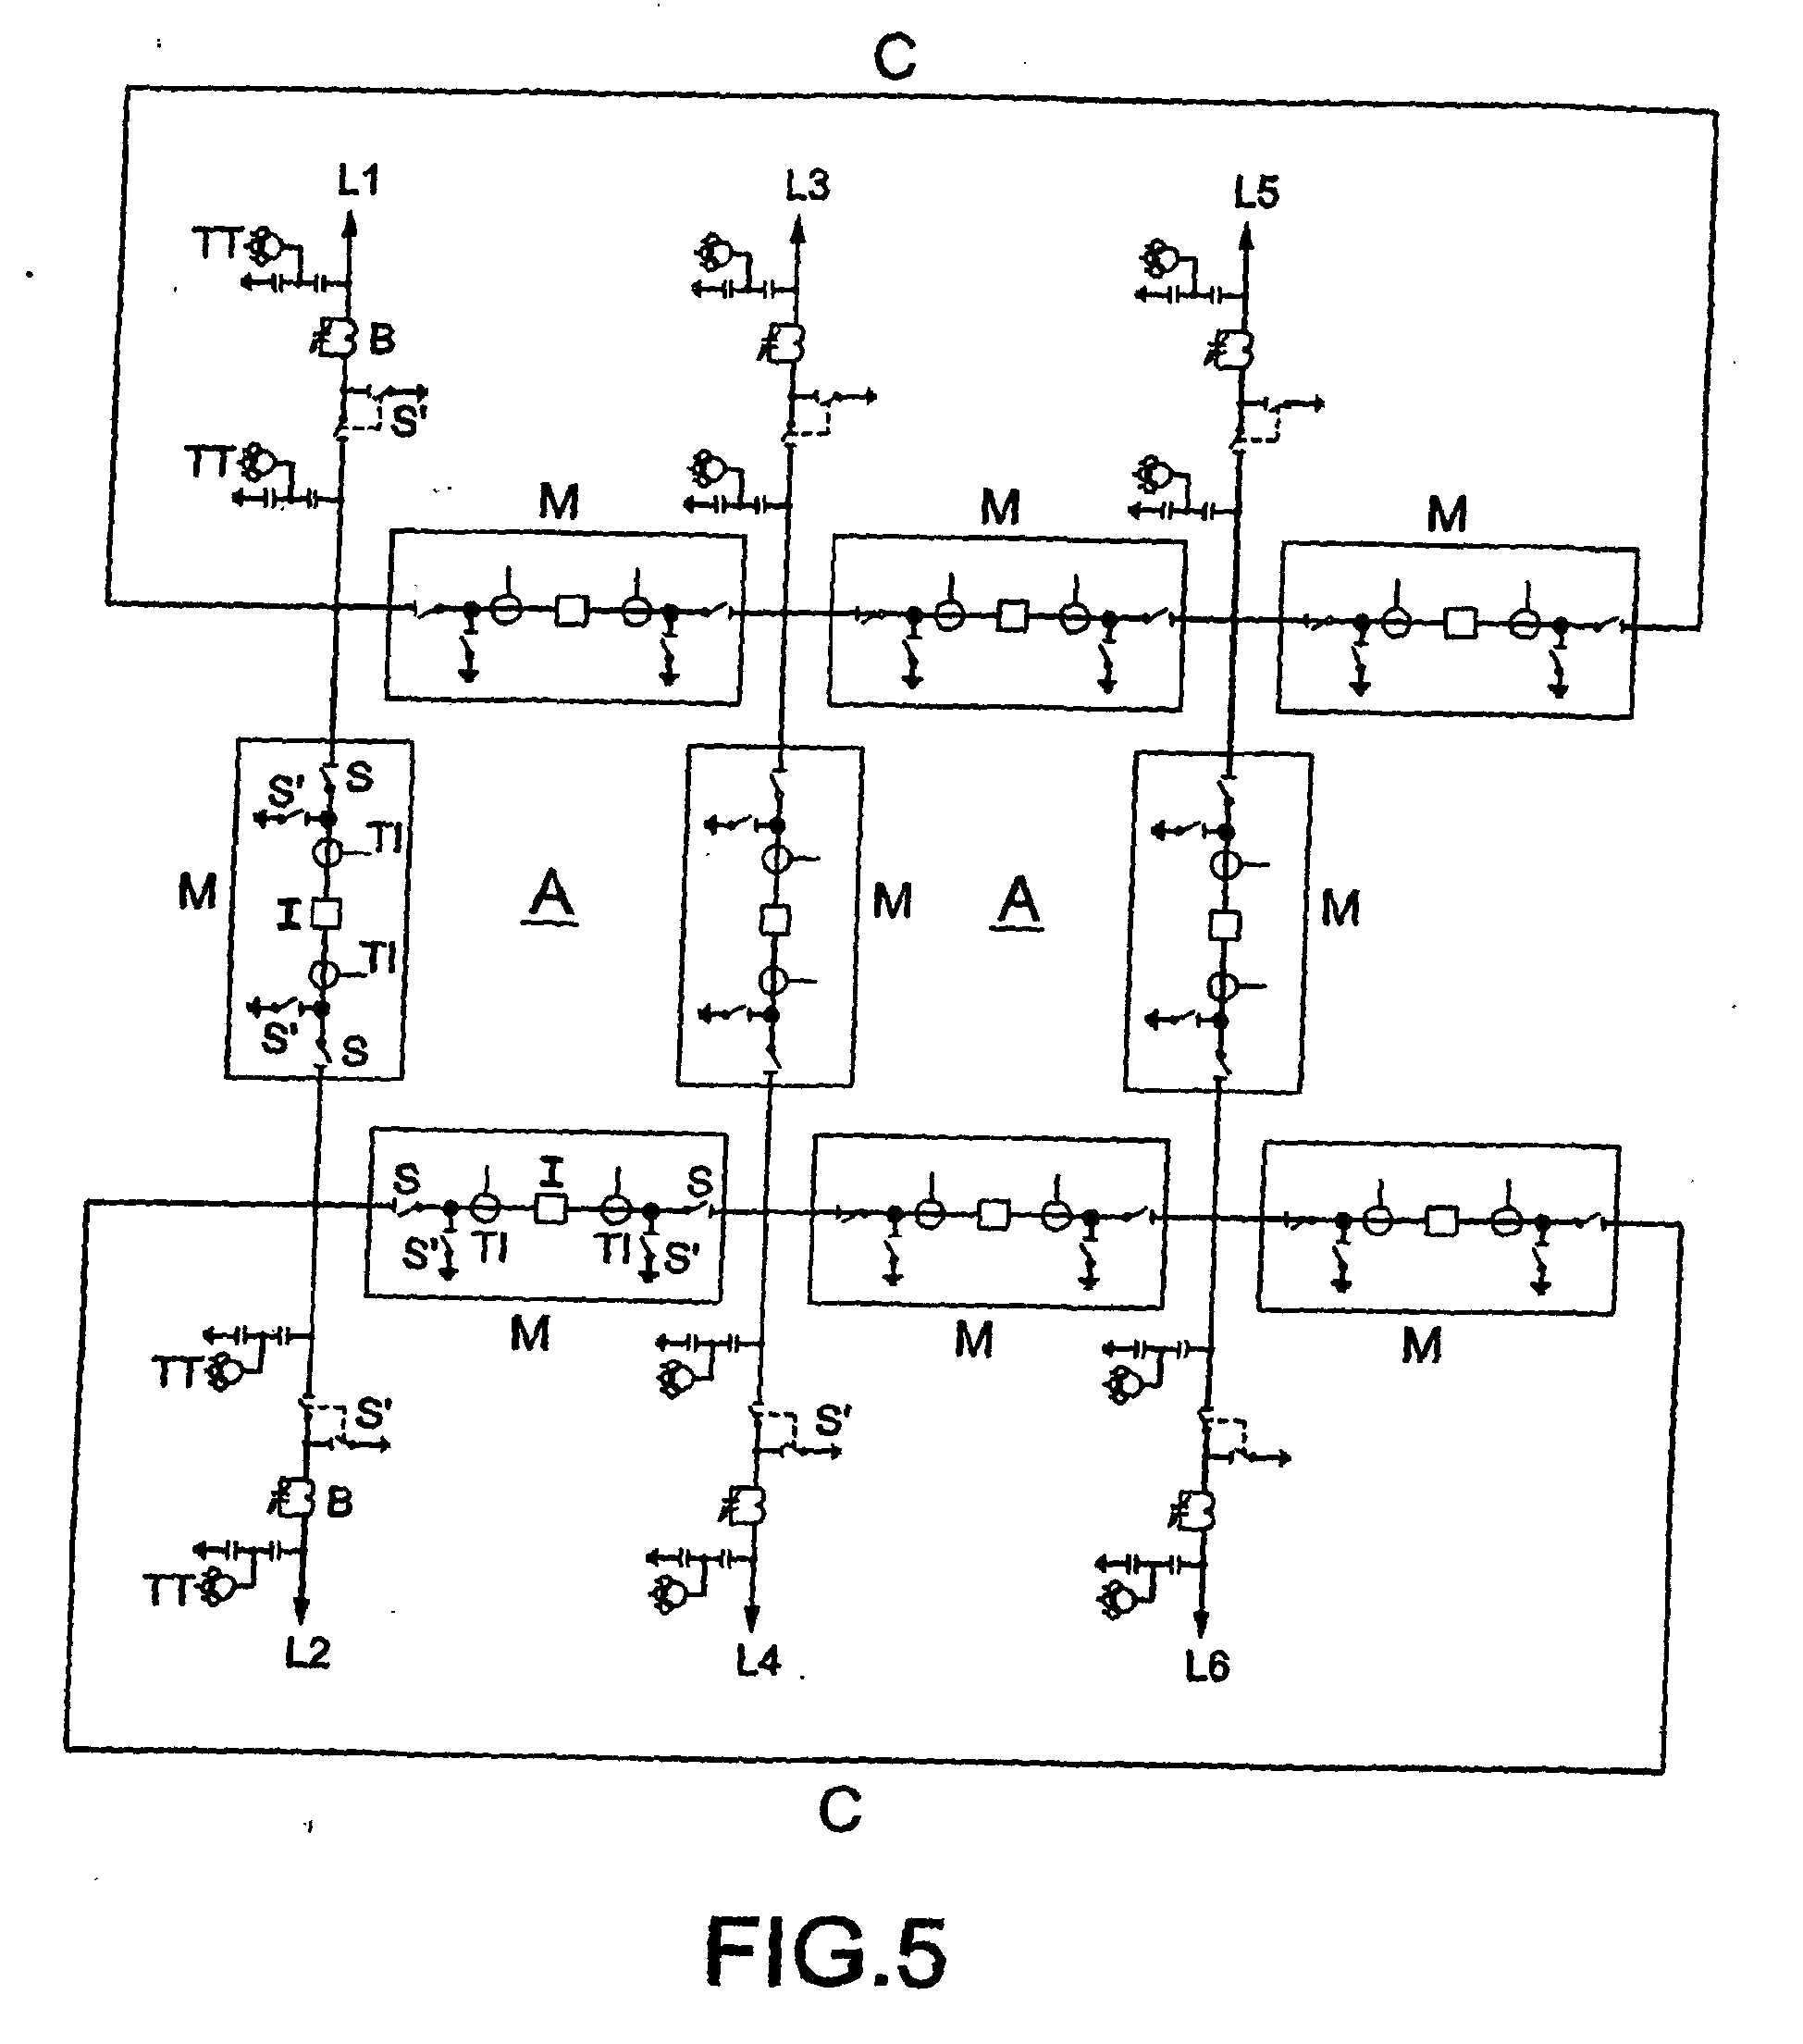 Electrical Substation Diagram - Wiring Diagrams Schema